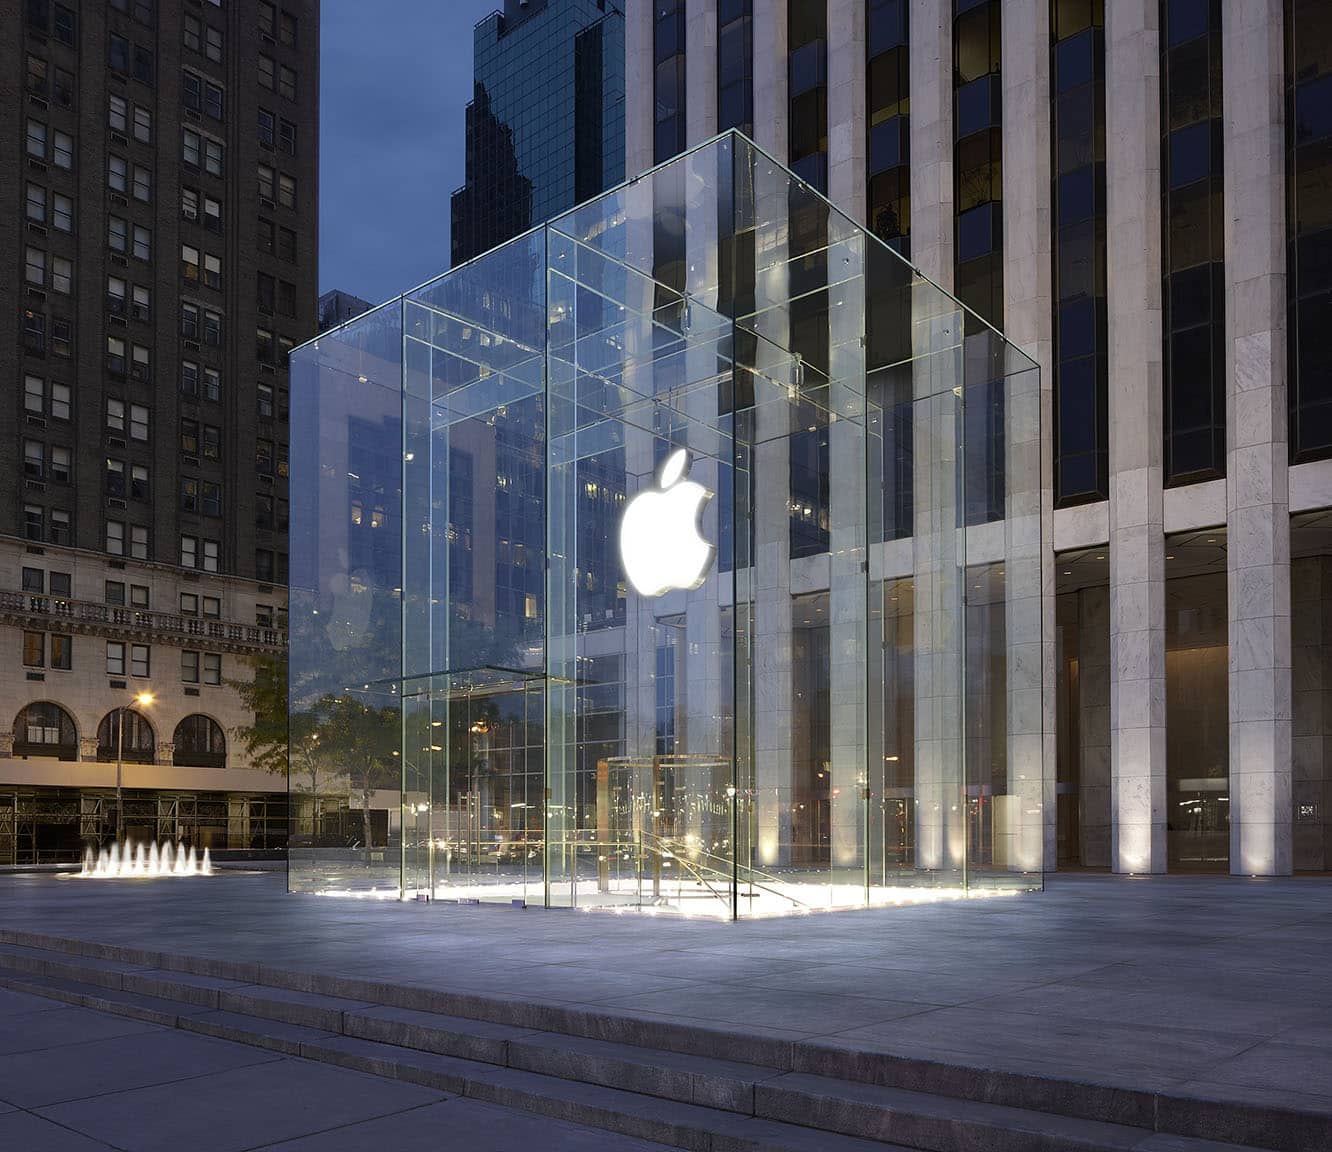 Apple may be adding Beats 1 DJ booth to Fifth Avenue store